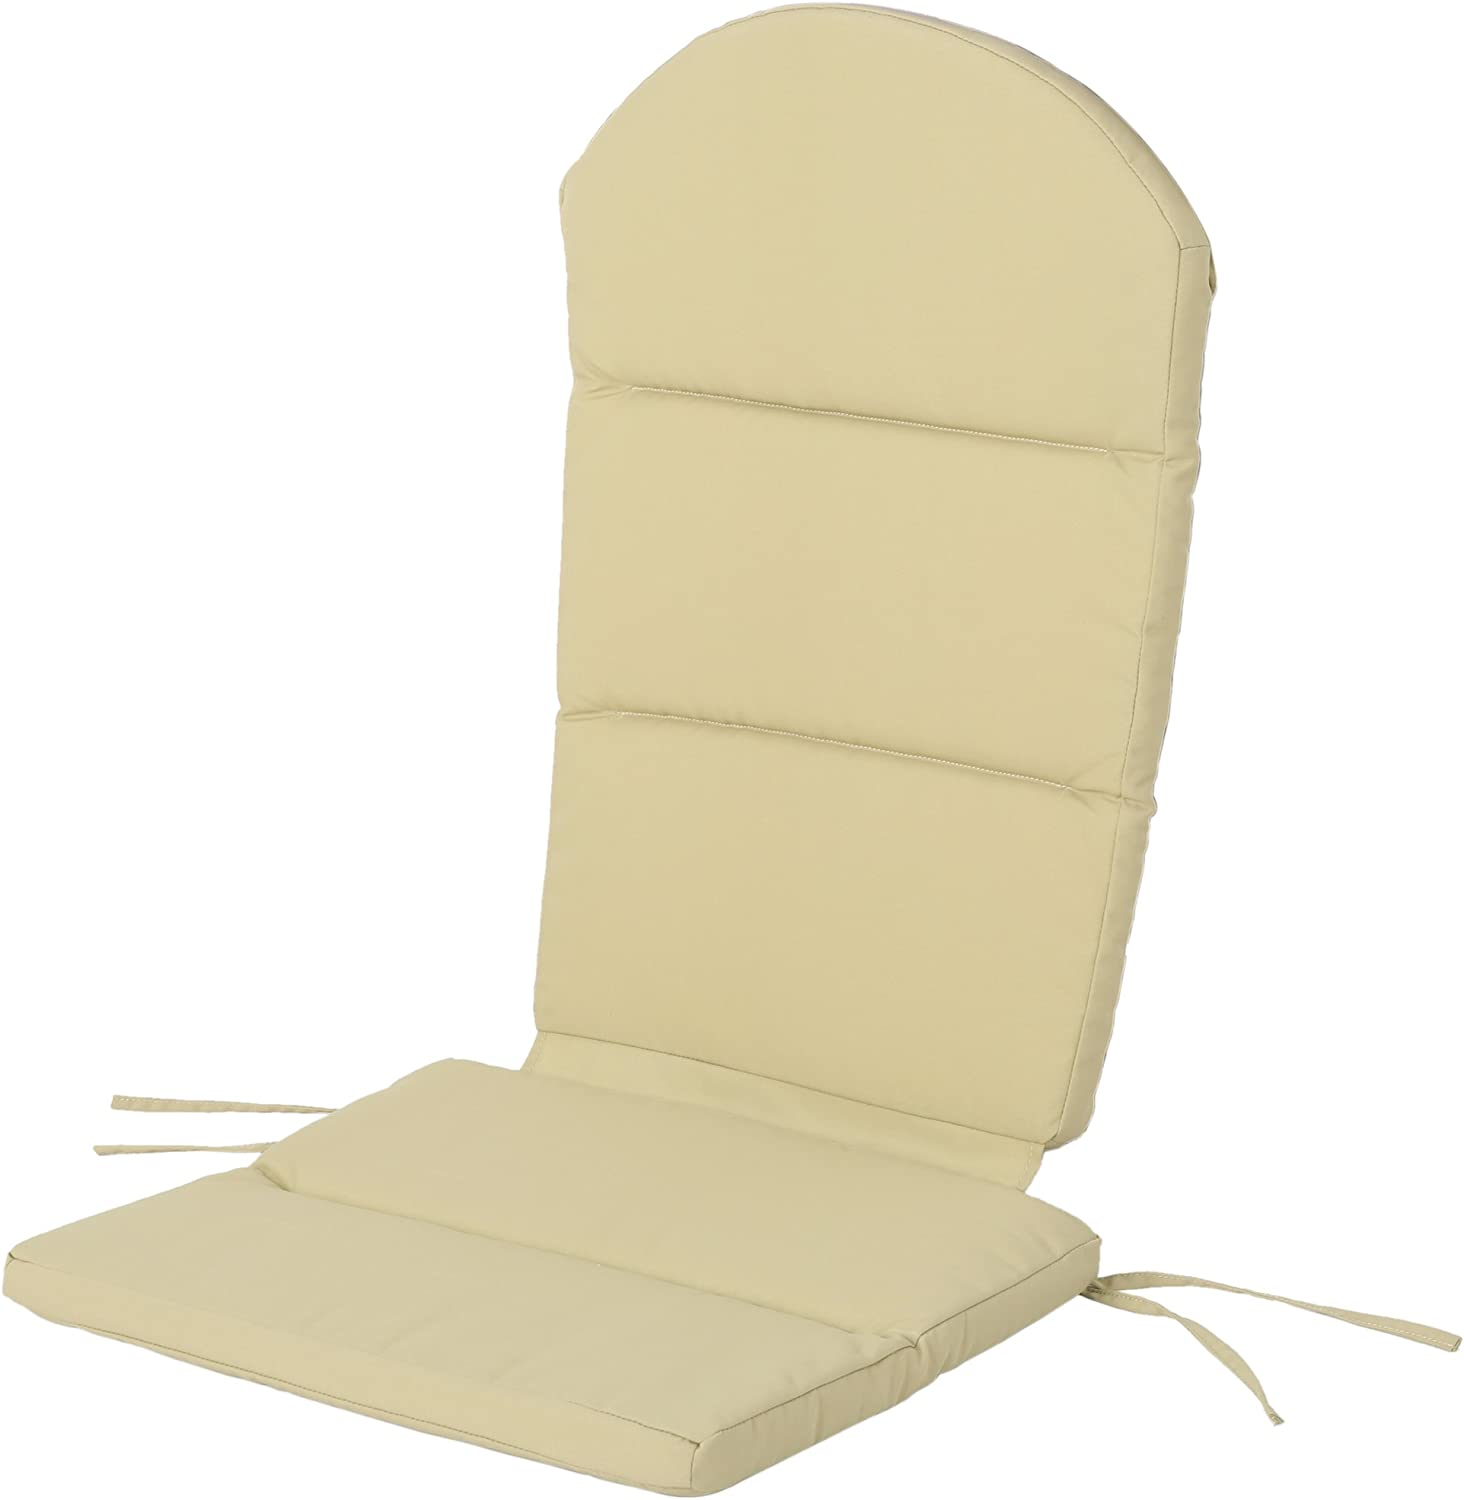 Christopher Knight Home 304530 Reed Outdoor Water-Resistant Adirondack Chair Cushion, Khaki